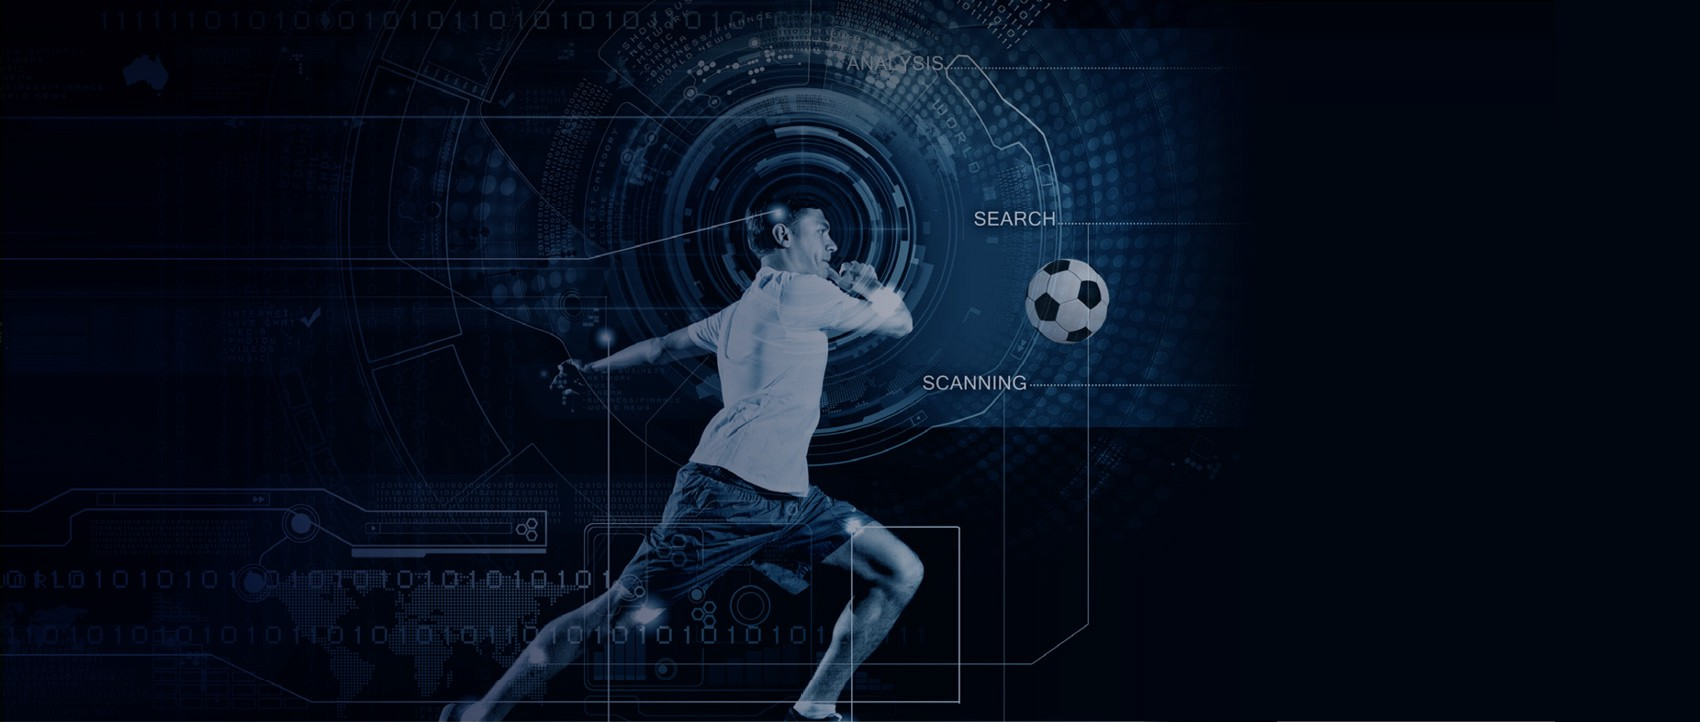 ae4031284 Football and Technology: From to Cuju to Blockchain